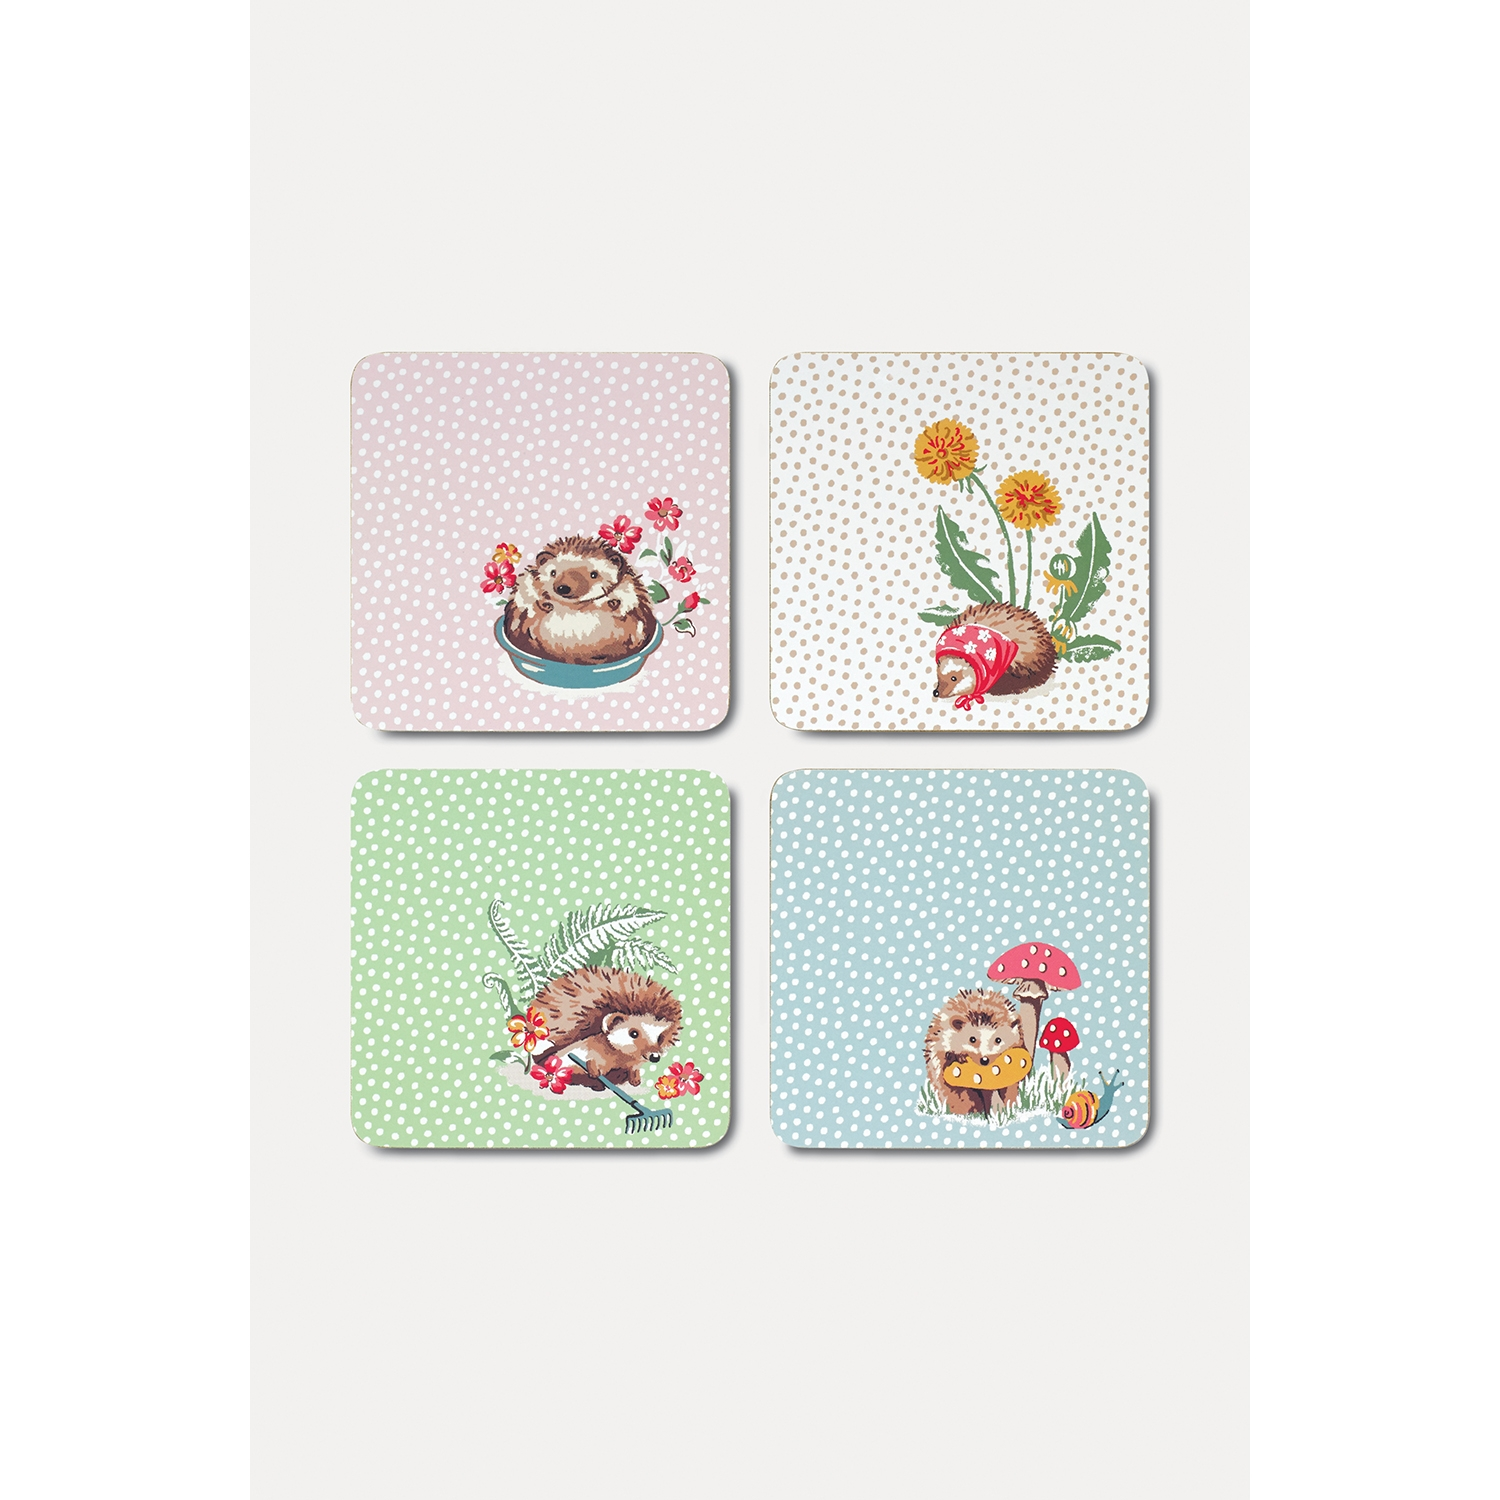 Image of Cath Kidston Coasters, Set of 4, Gardener's Club, Light Pink